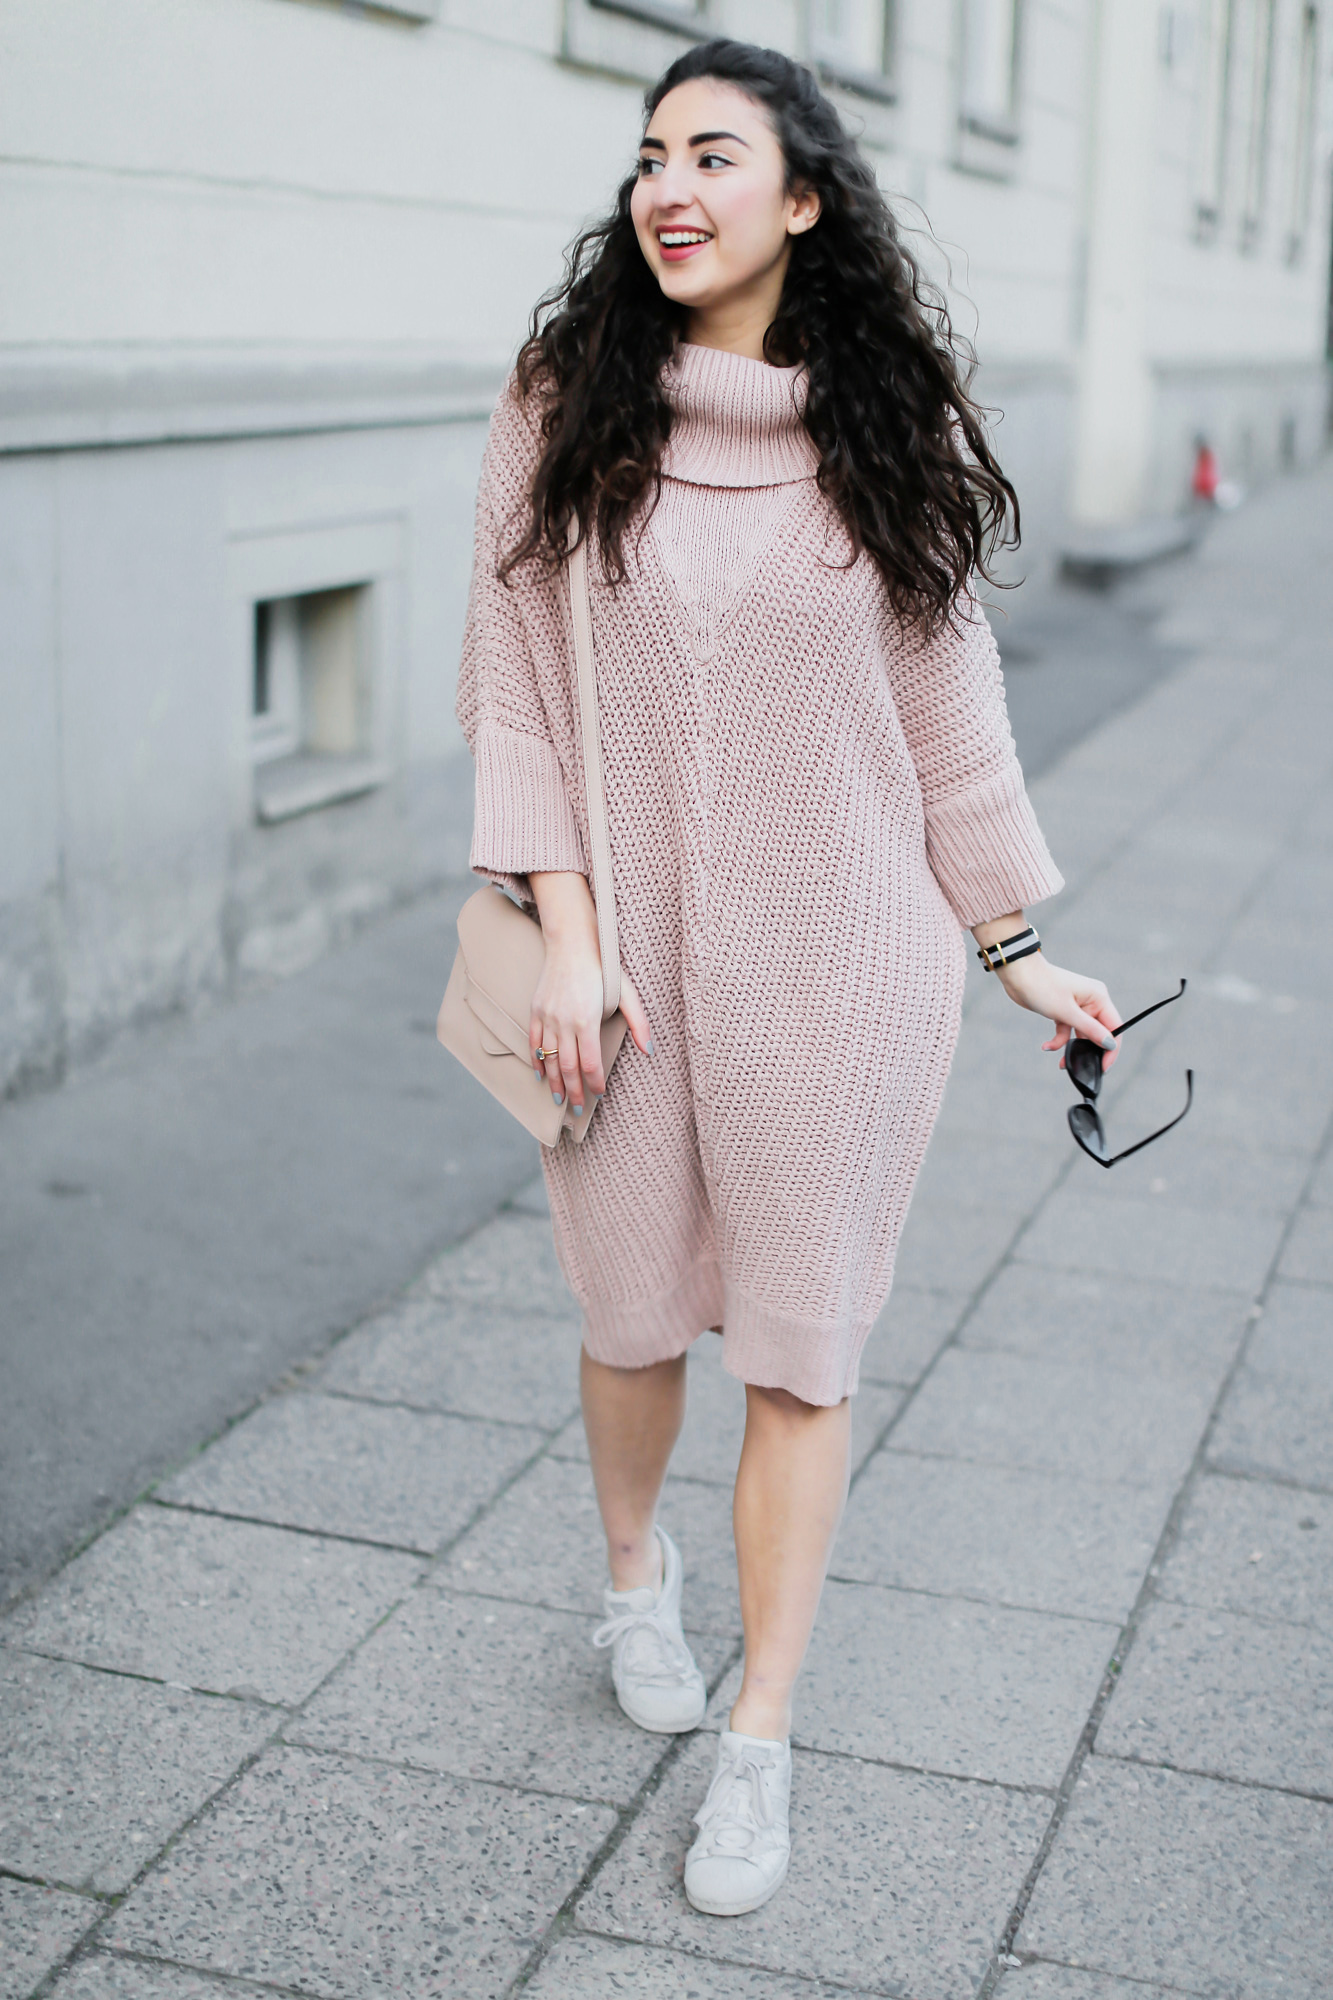 knitted dress and sneakers fashionblog berlin. Black Bedroom Furniture Sets. Home Design Ideas